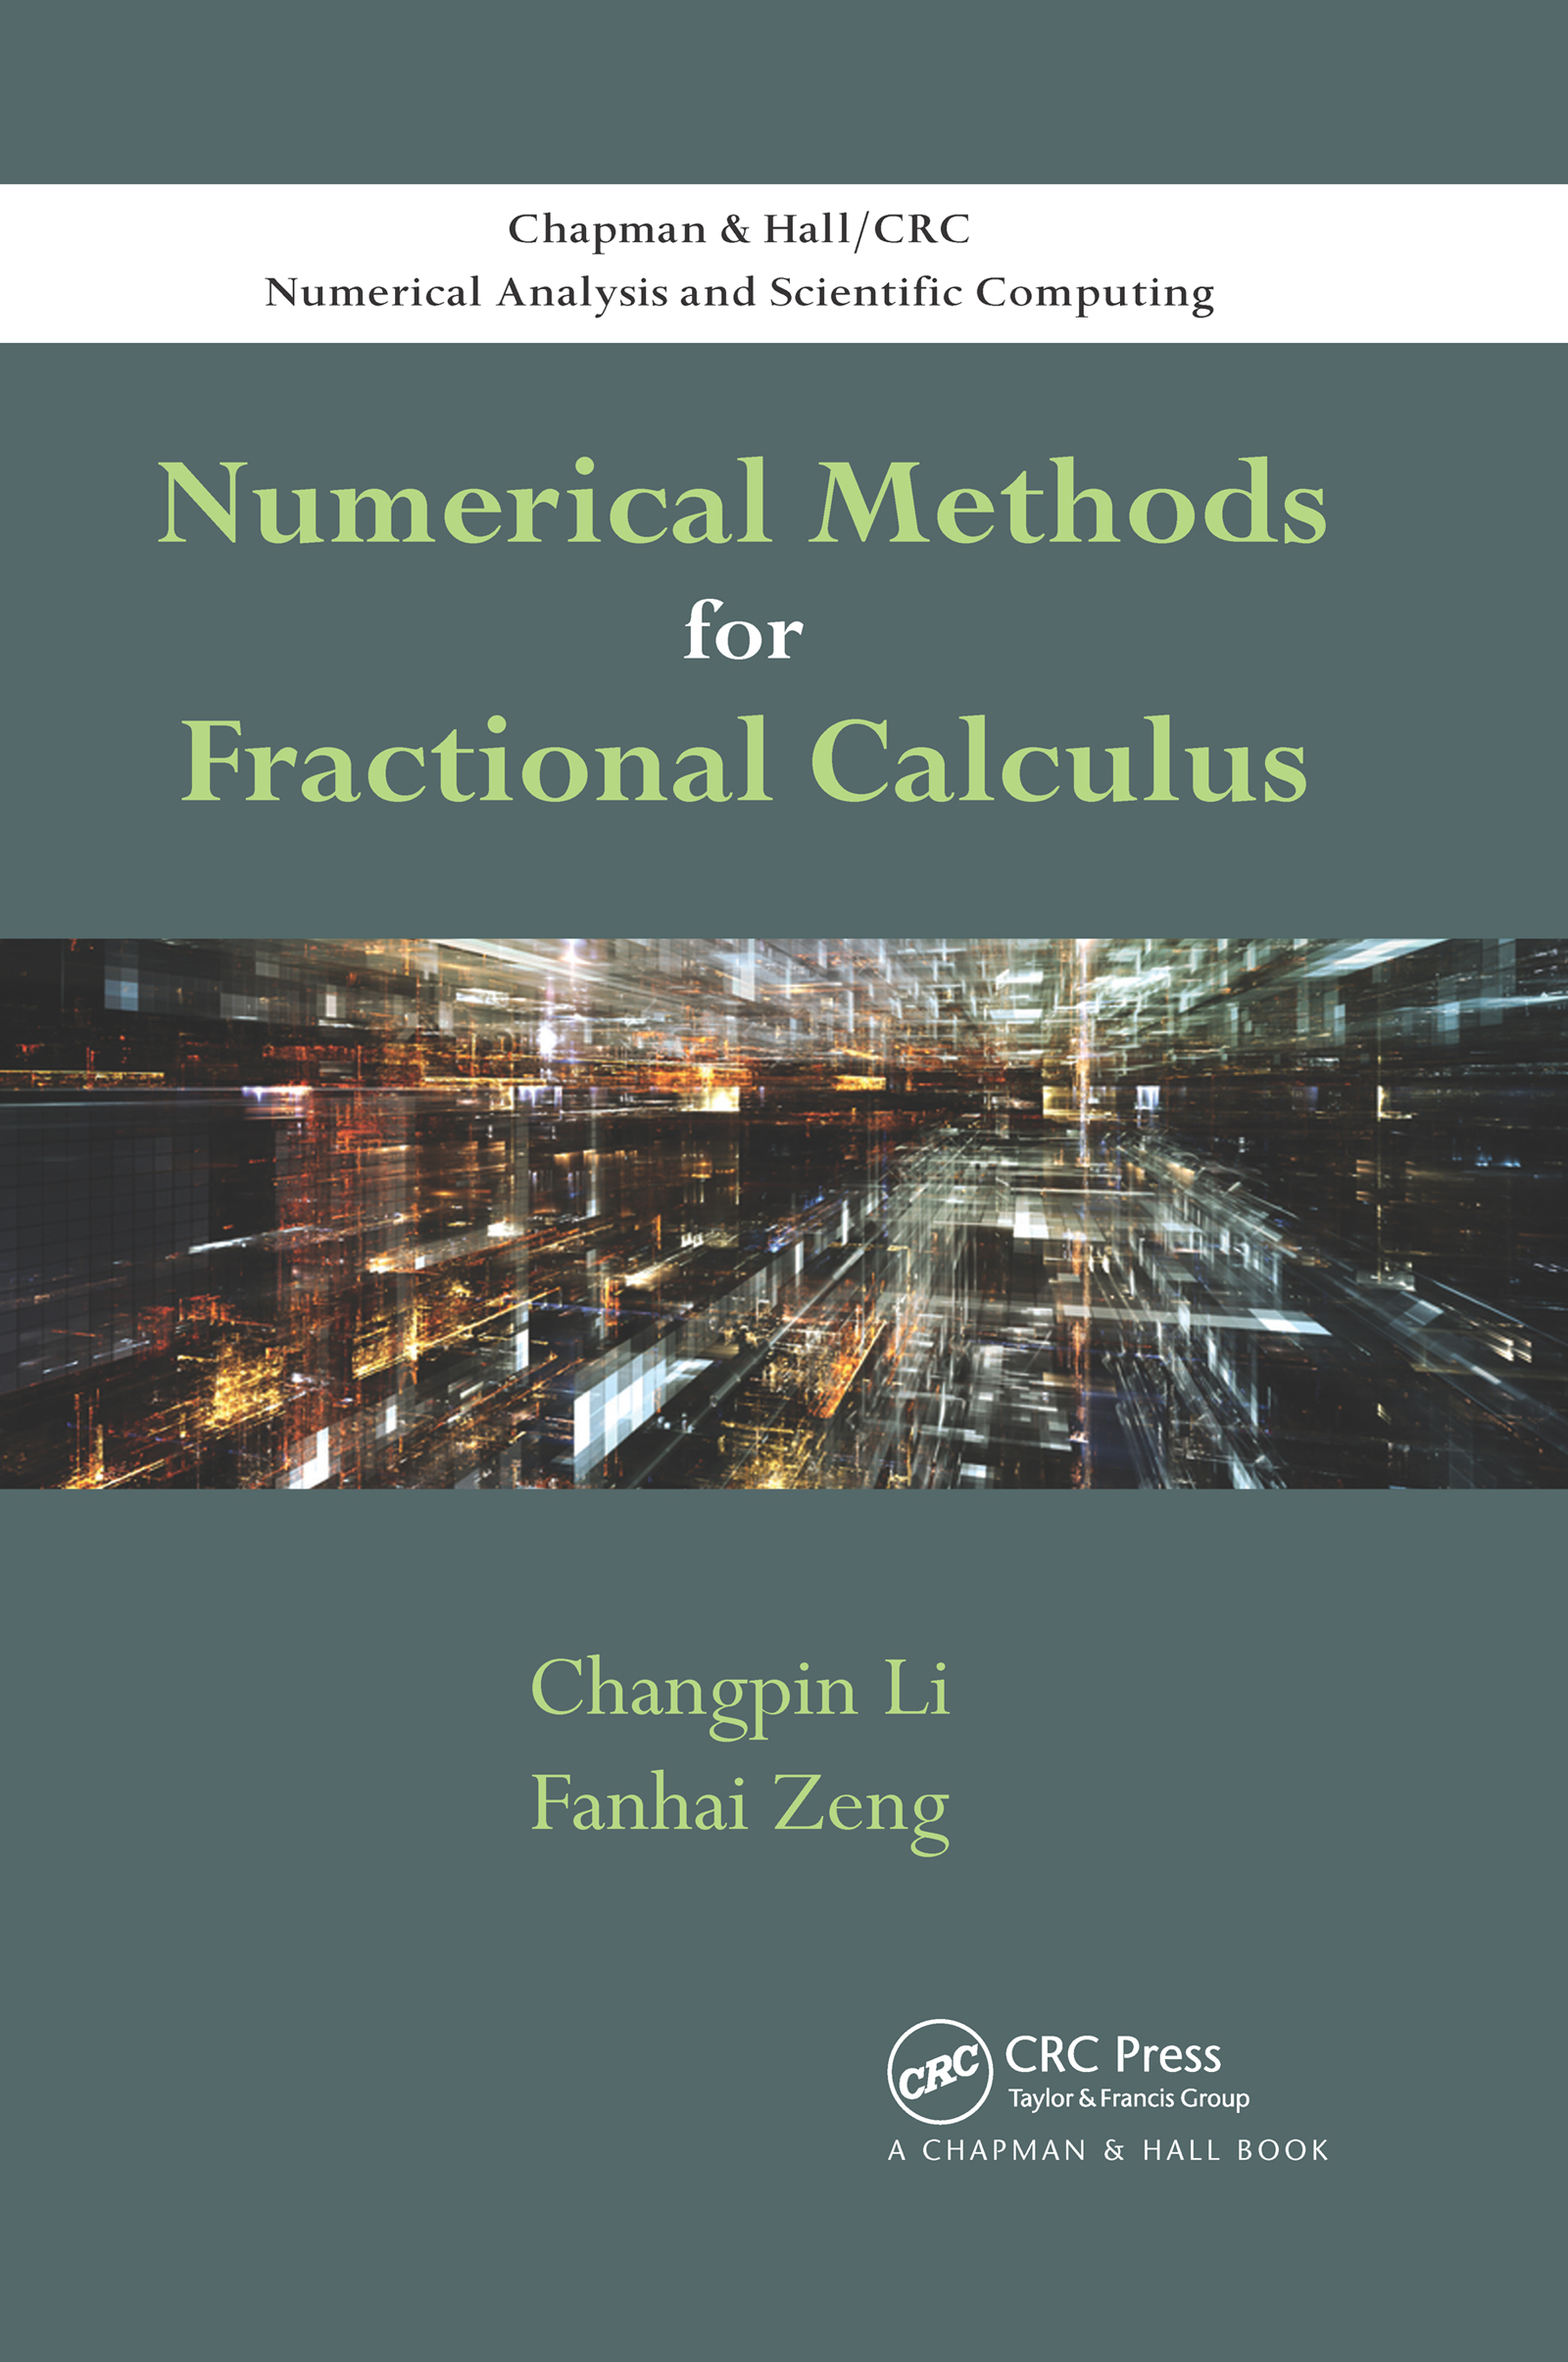 Numerical Methods for Fractional Calculus